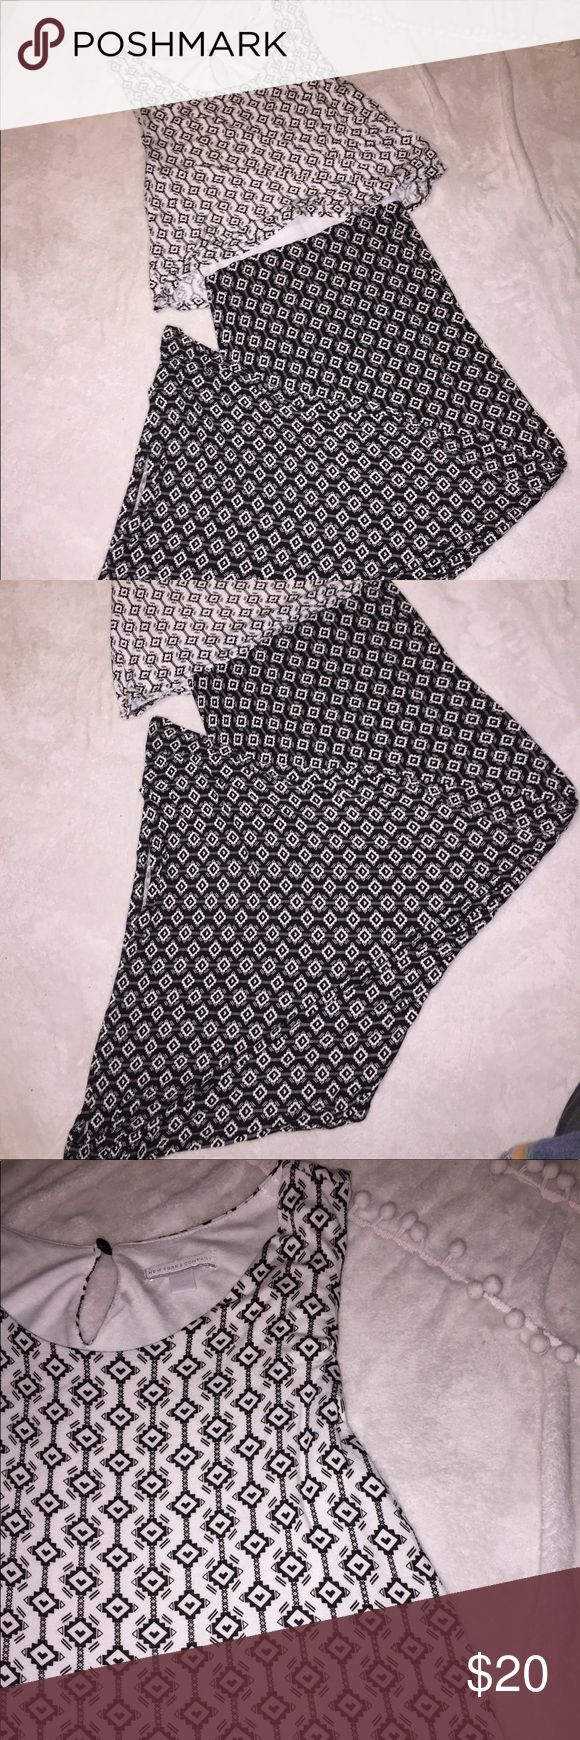 New York & Co. Aztec Maxi Dress Black and white color block maxi dress with an Aztec print! This dress is super soft and definitely a crowd favorite. This is gently used and in excellent condition. Can be worn with a black or colorful sweater! Size medium. Super soft fabric 😍❤️ New York & Company Dresses Maxi